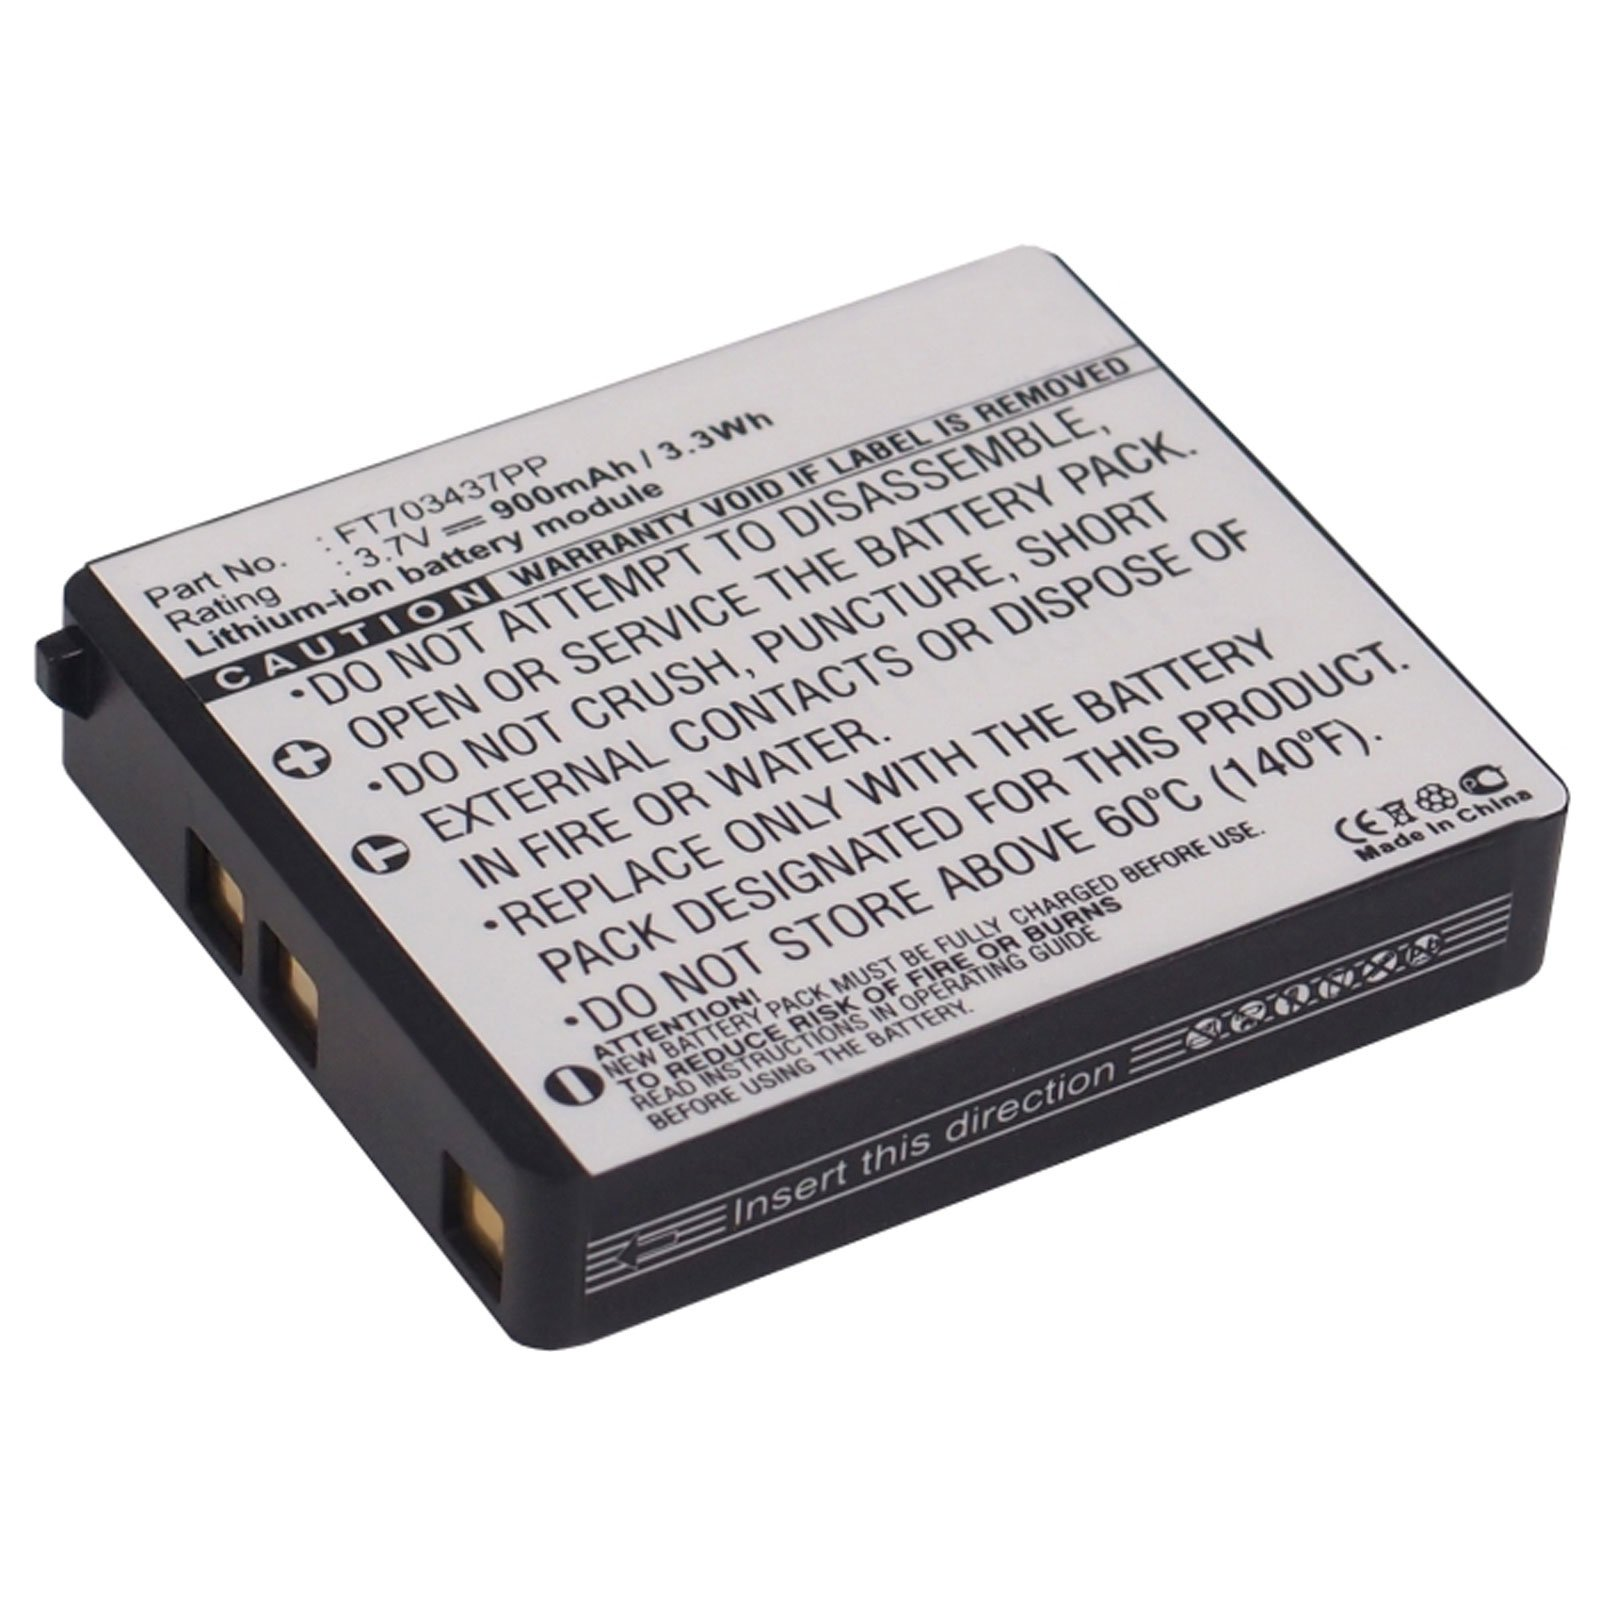 900Mah Lithium Battery For RAZER Mamba Gaming Wireless Mouse Part: FT703437PP, RZ03-00120100-0000 , Model : RC03-001201